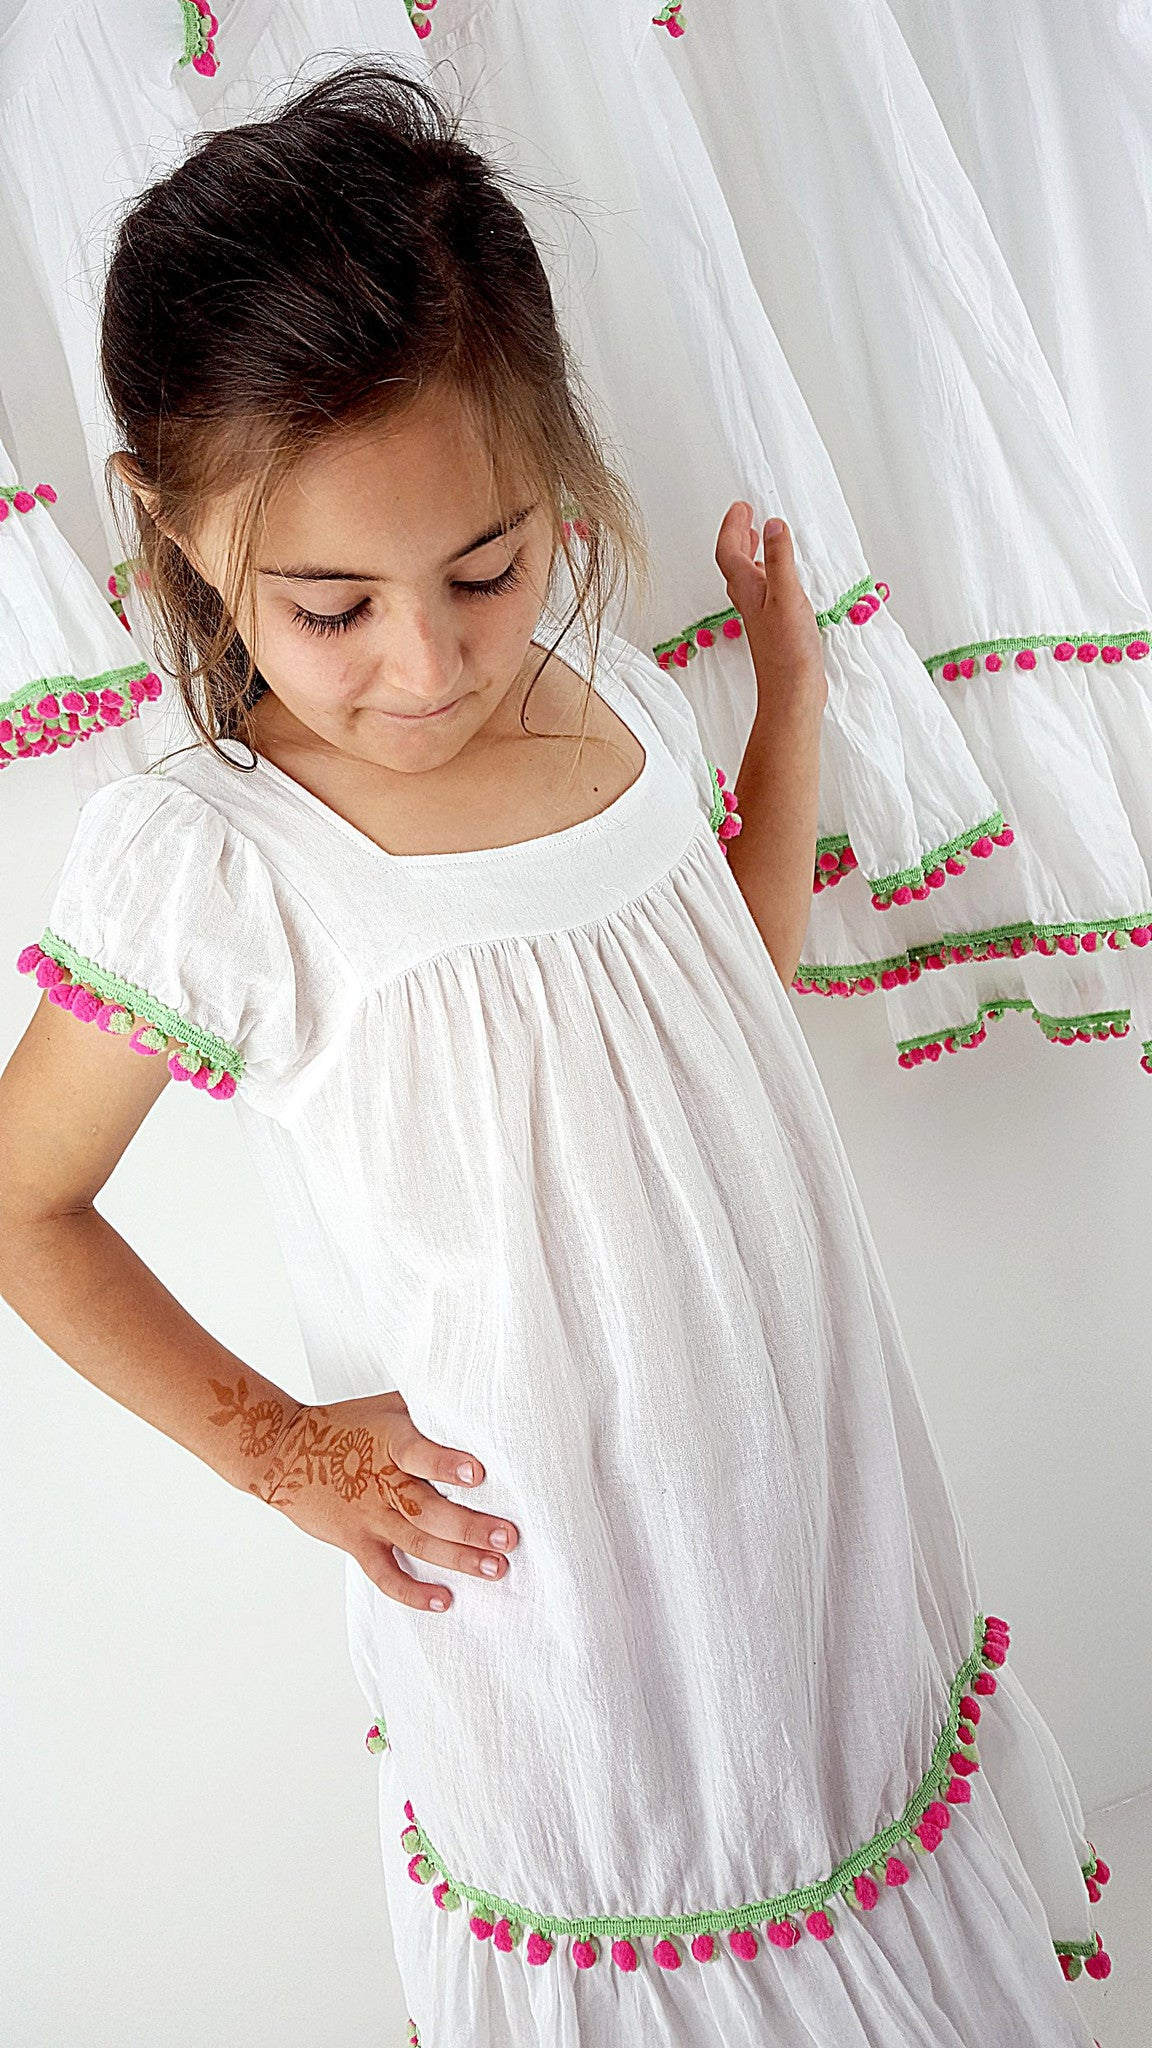 5a69373fab7b9 Size · Lightweight little girls peasant style Summer frock with pom pom  detailed hem. White.